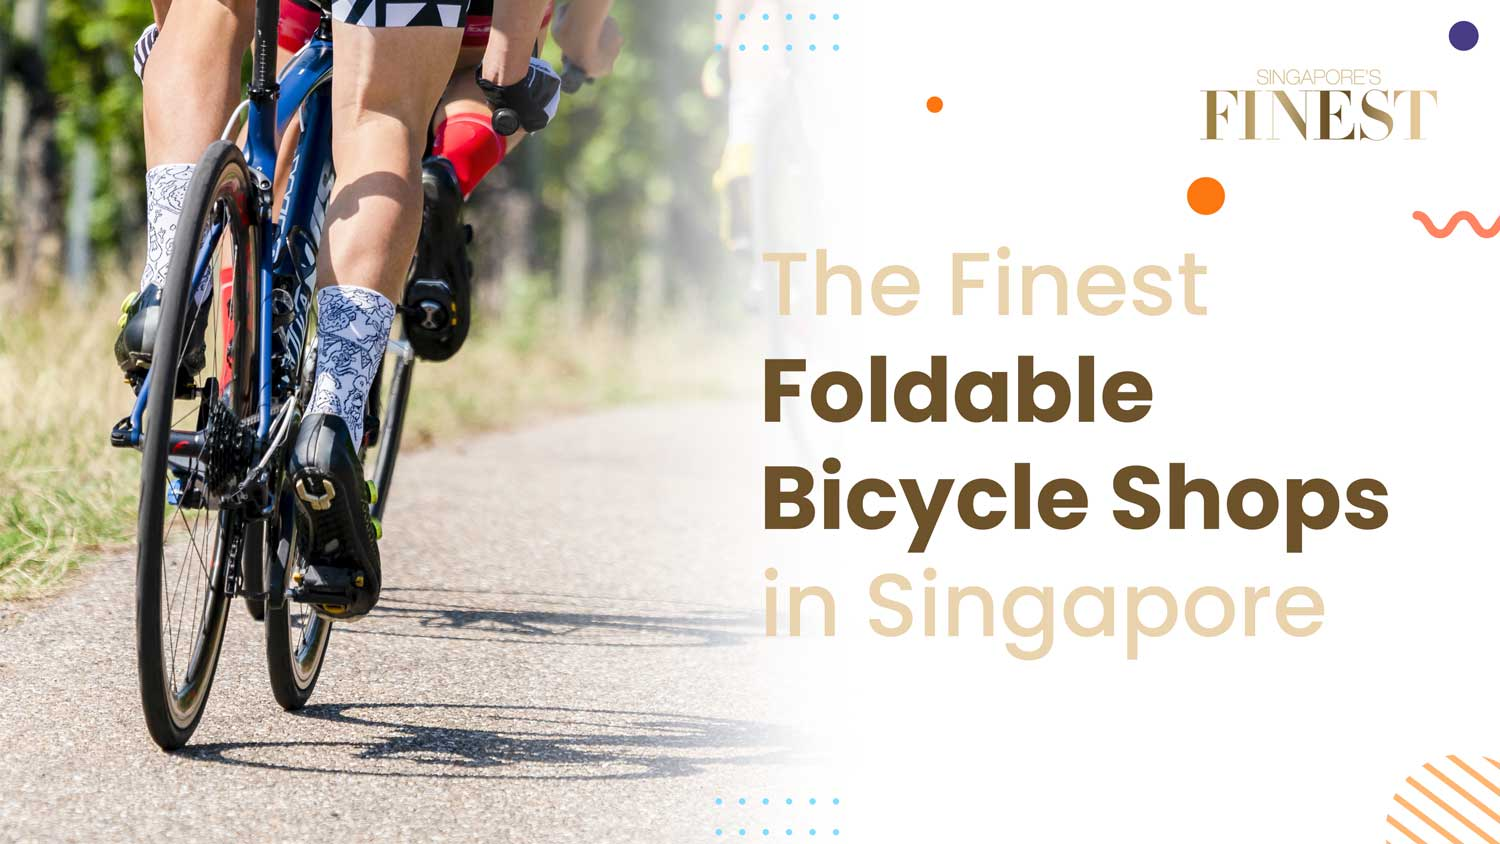 Foldable Bicycle Shops in Singapore